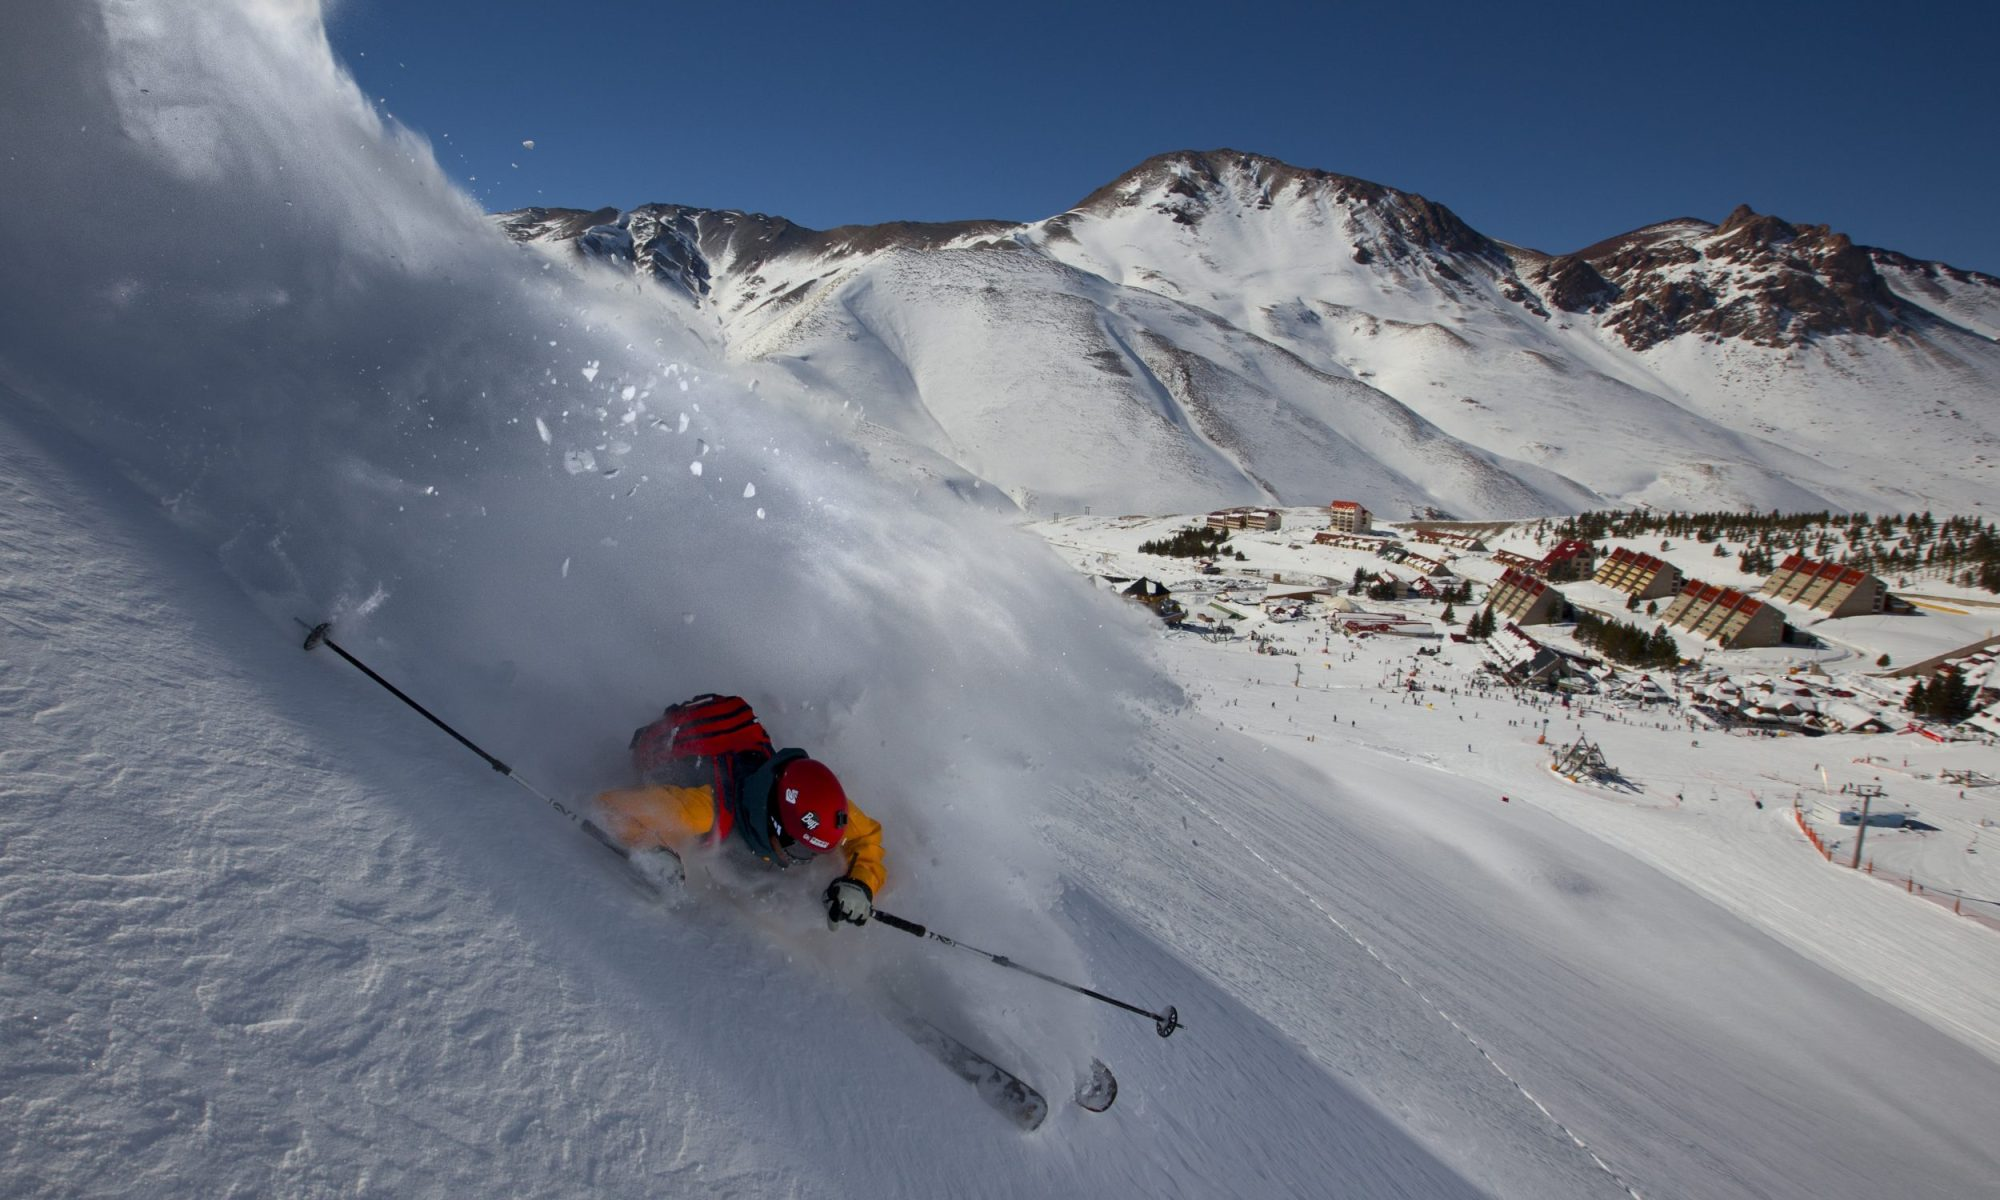 Las Leñas, Cenidor, a black short steep piste in Las Leñas connecting the two sectors of the mountain. .